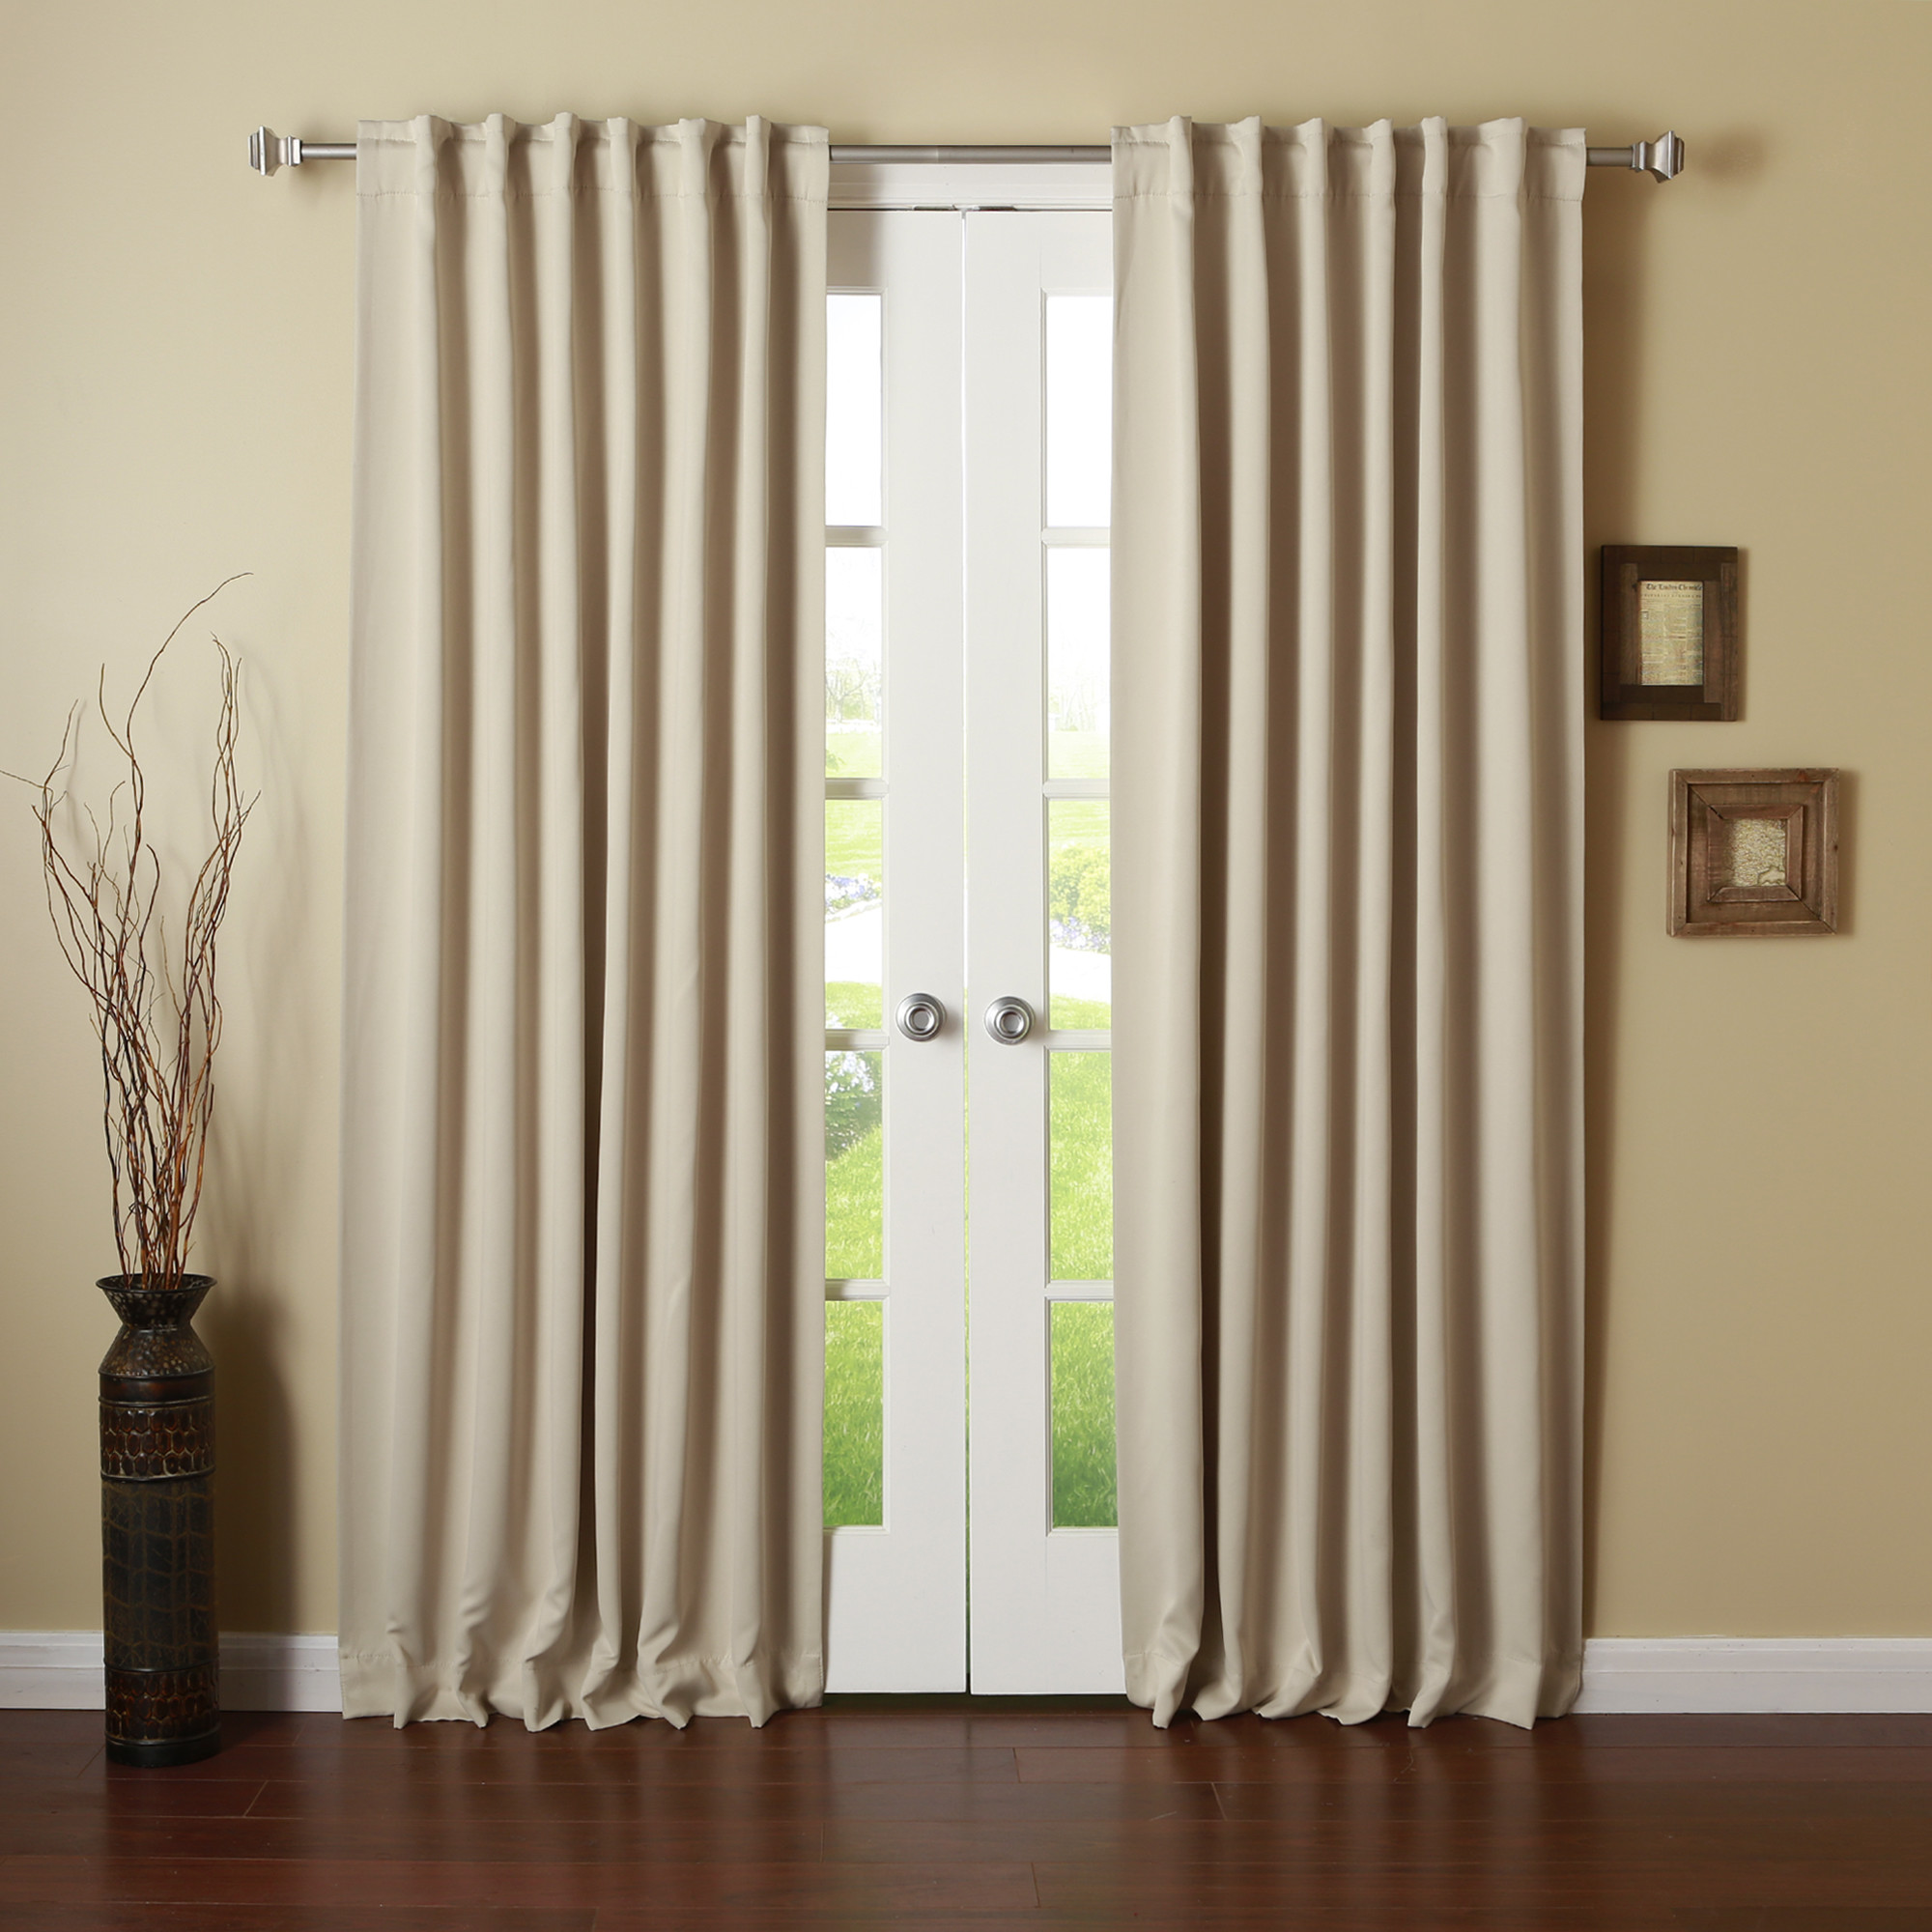 Cheap Blackout Curtains for Inspiring Home Decorating Ideas: Thermal Black Out Curtains | Light Canceling Curtains | Cheap Blackout Curtains